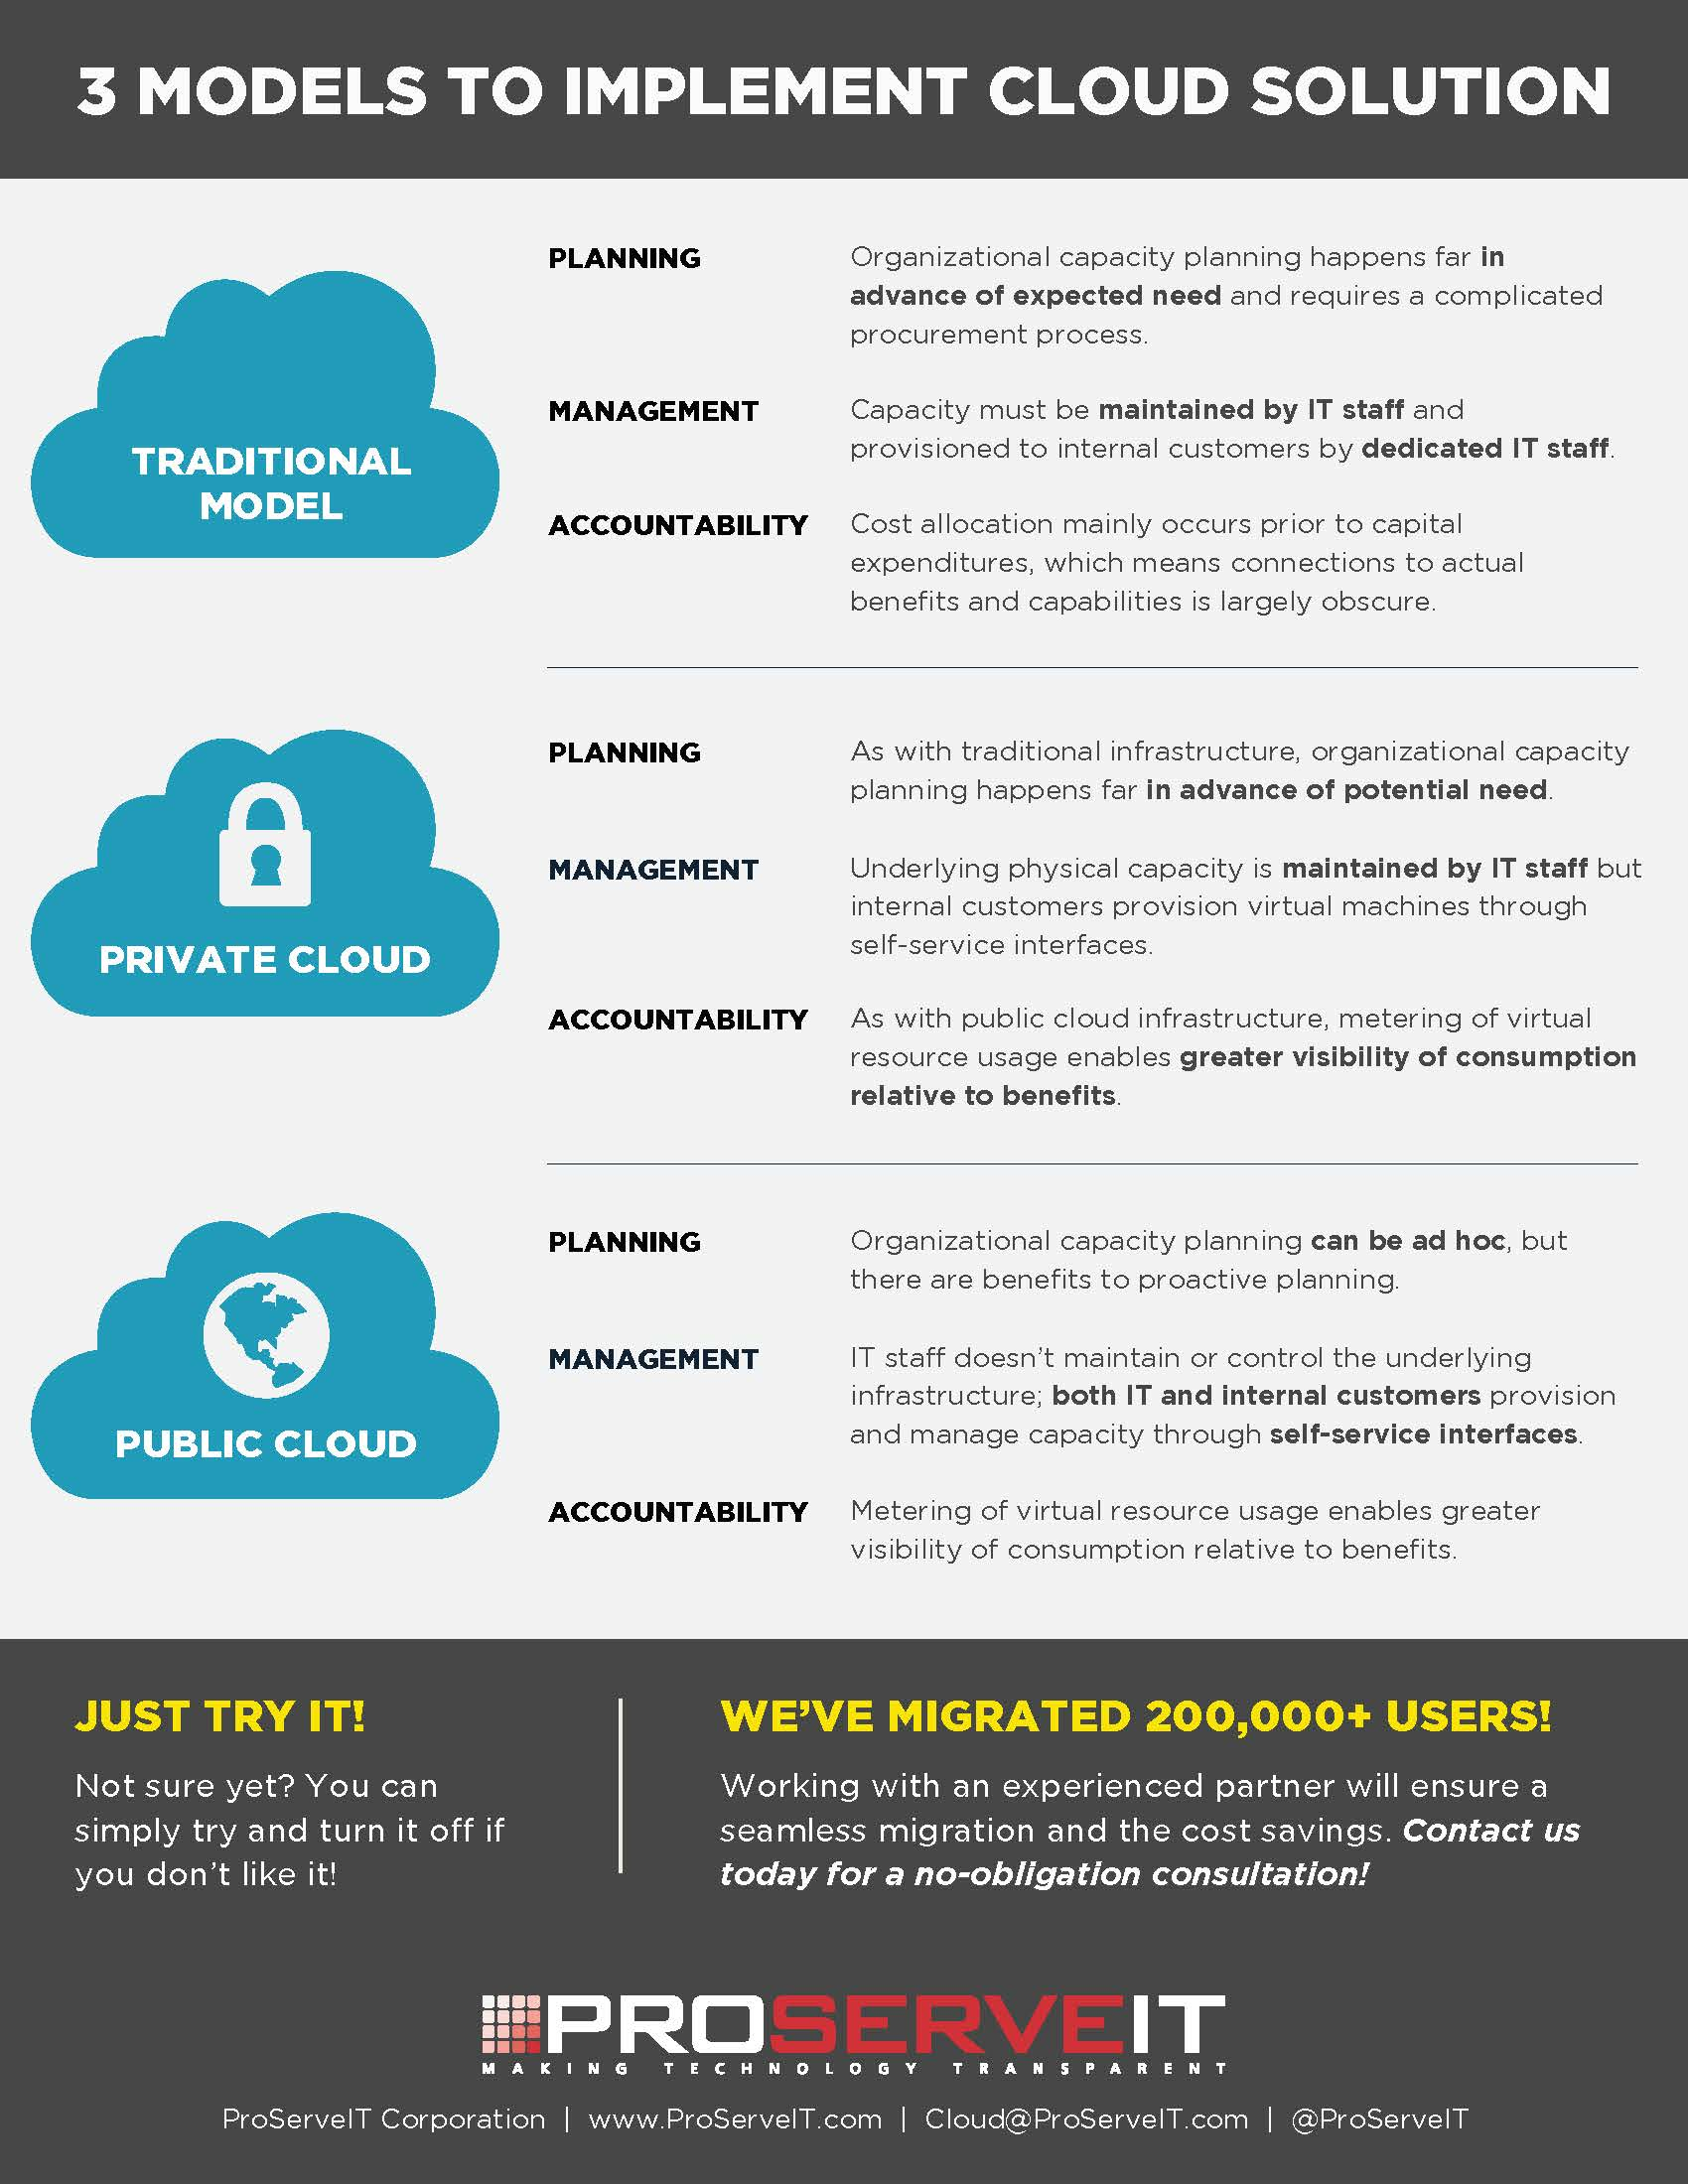 3 models to implement cloud solution